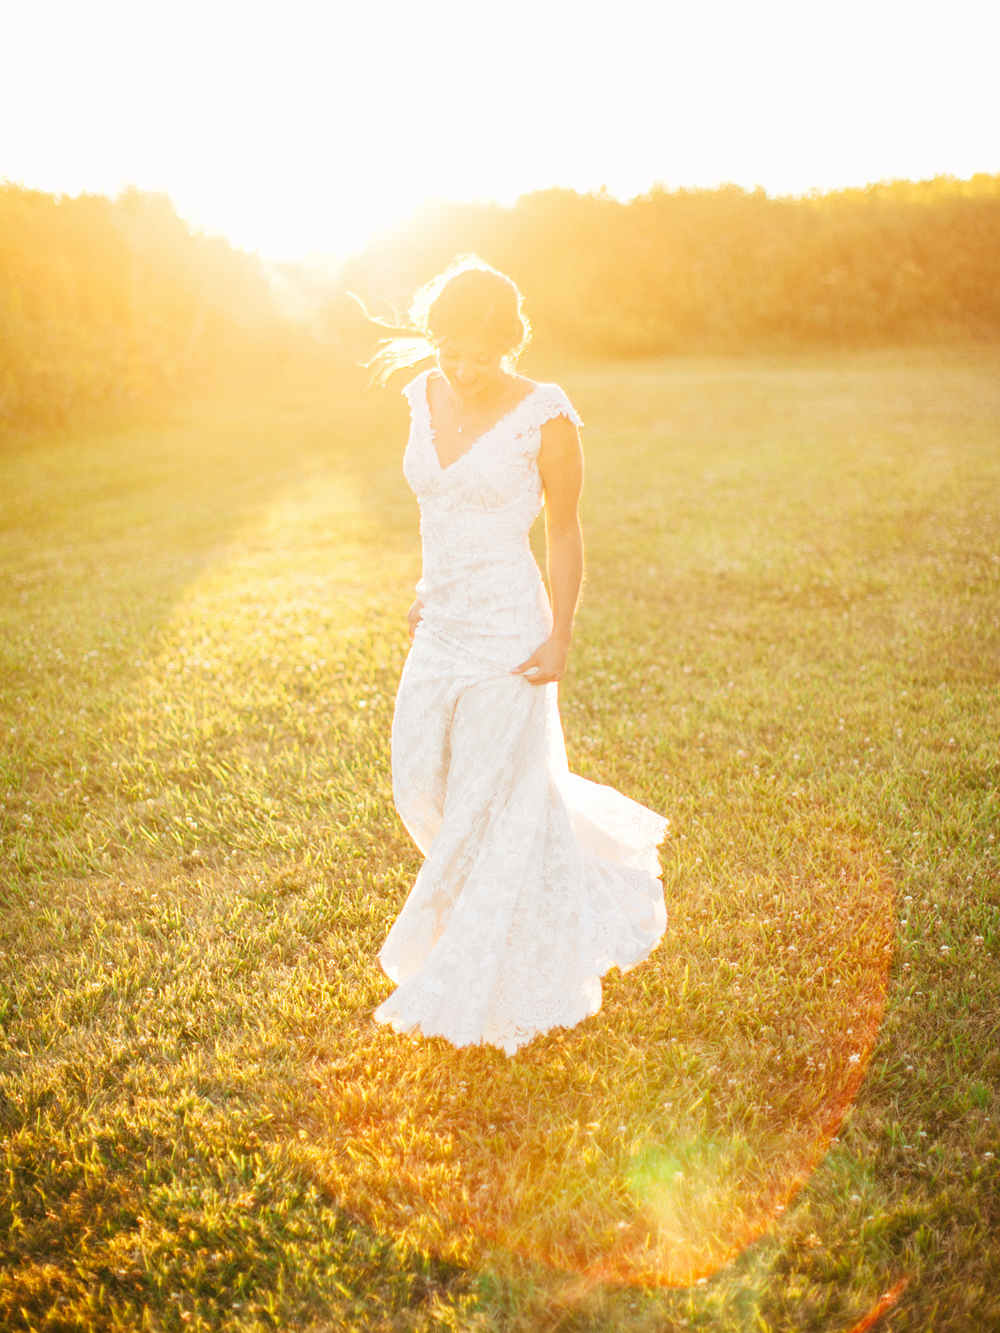 ryan-flynn-photography-best-wedding-photos-2014-0168.JPG